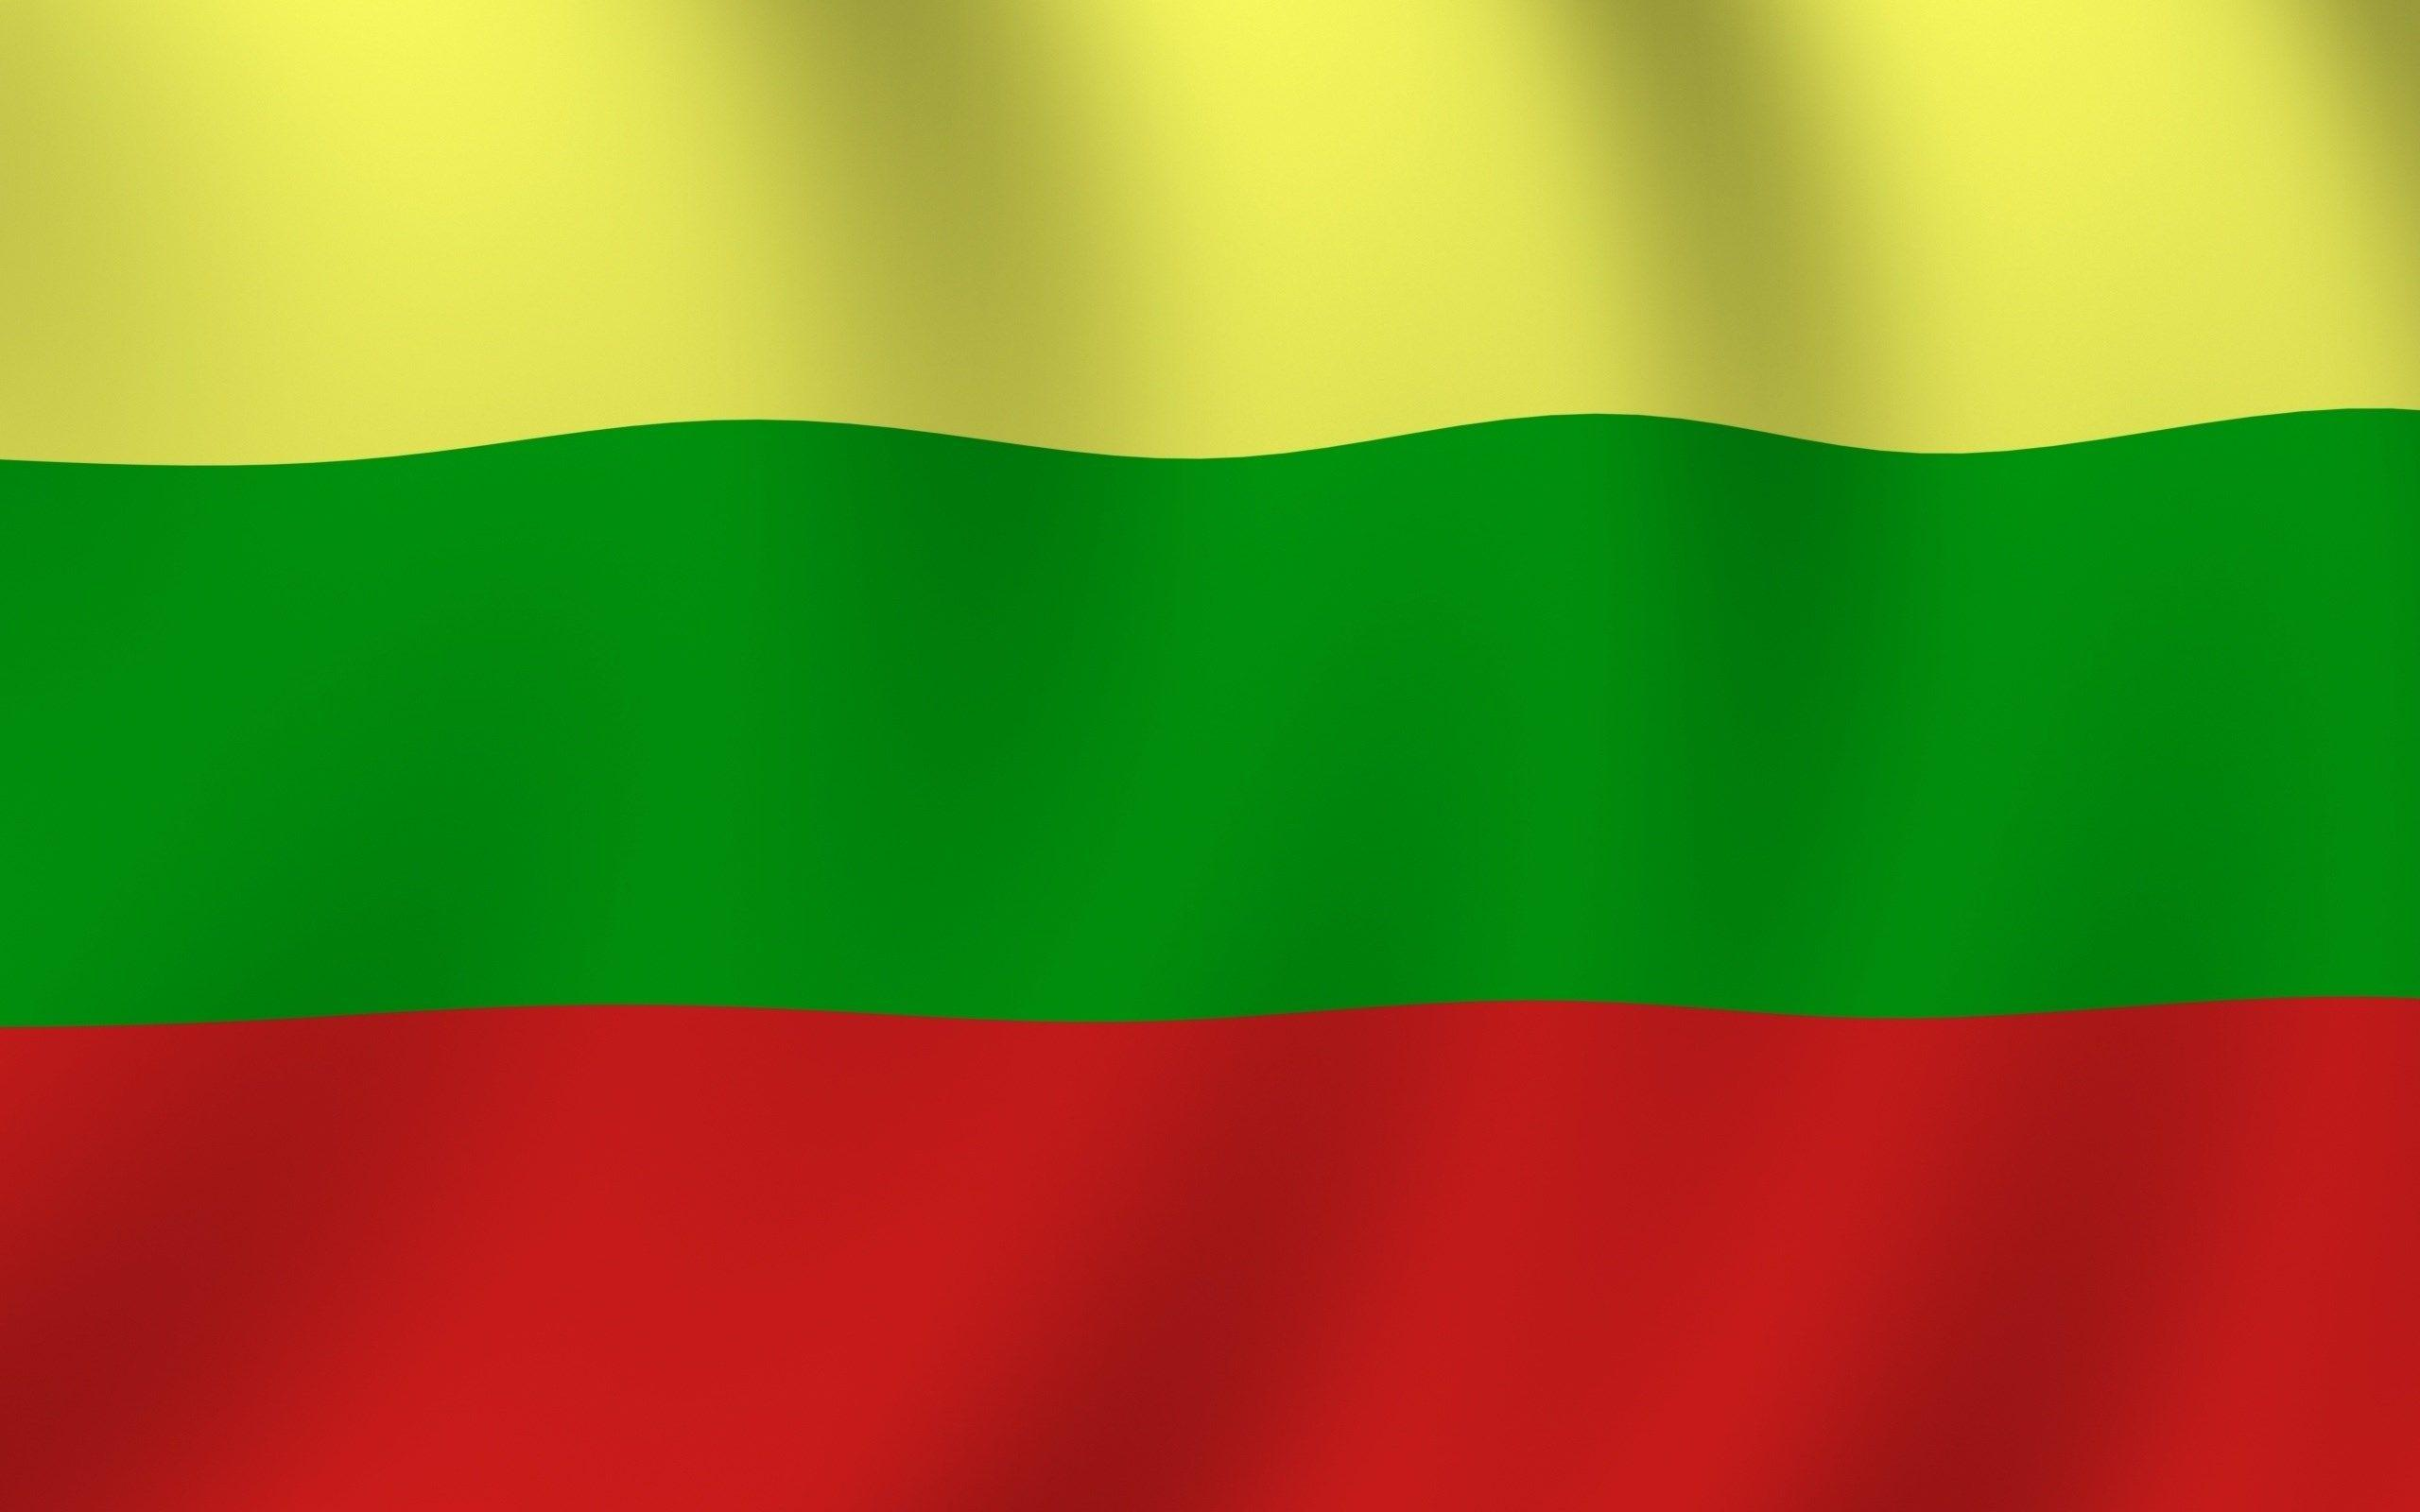 flag of lithuania wallpapers and backgrounds